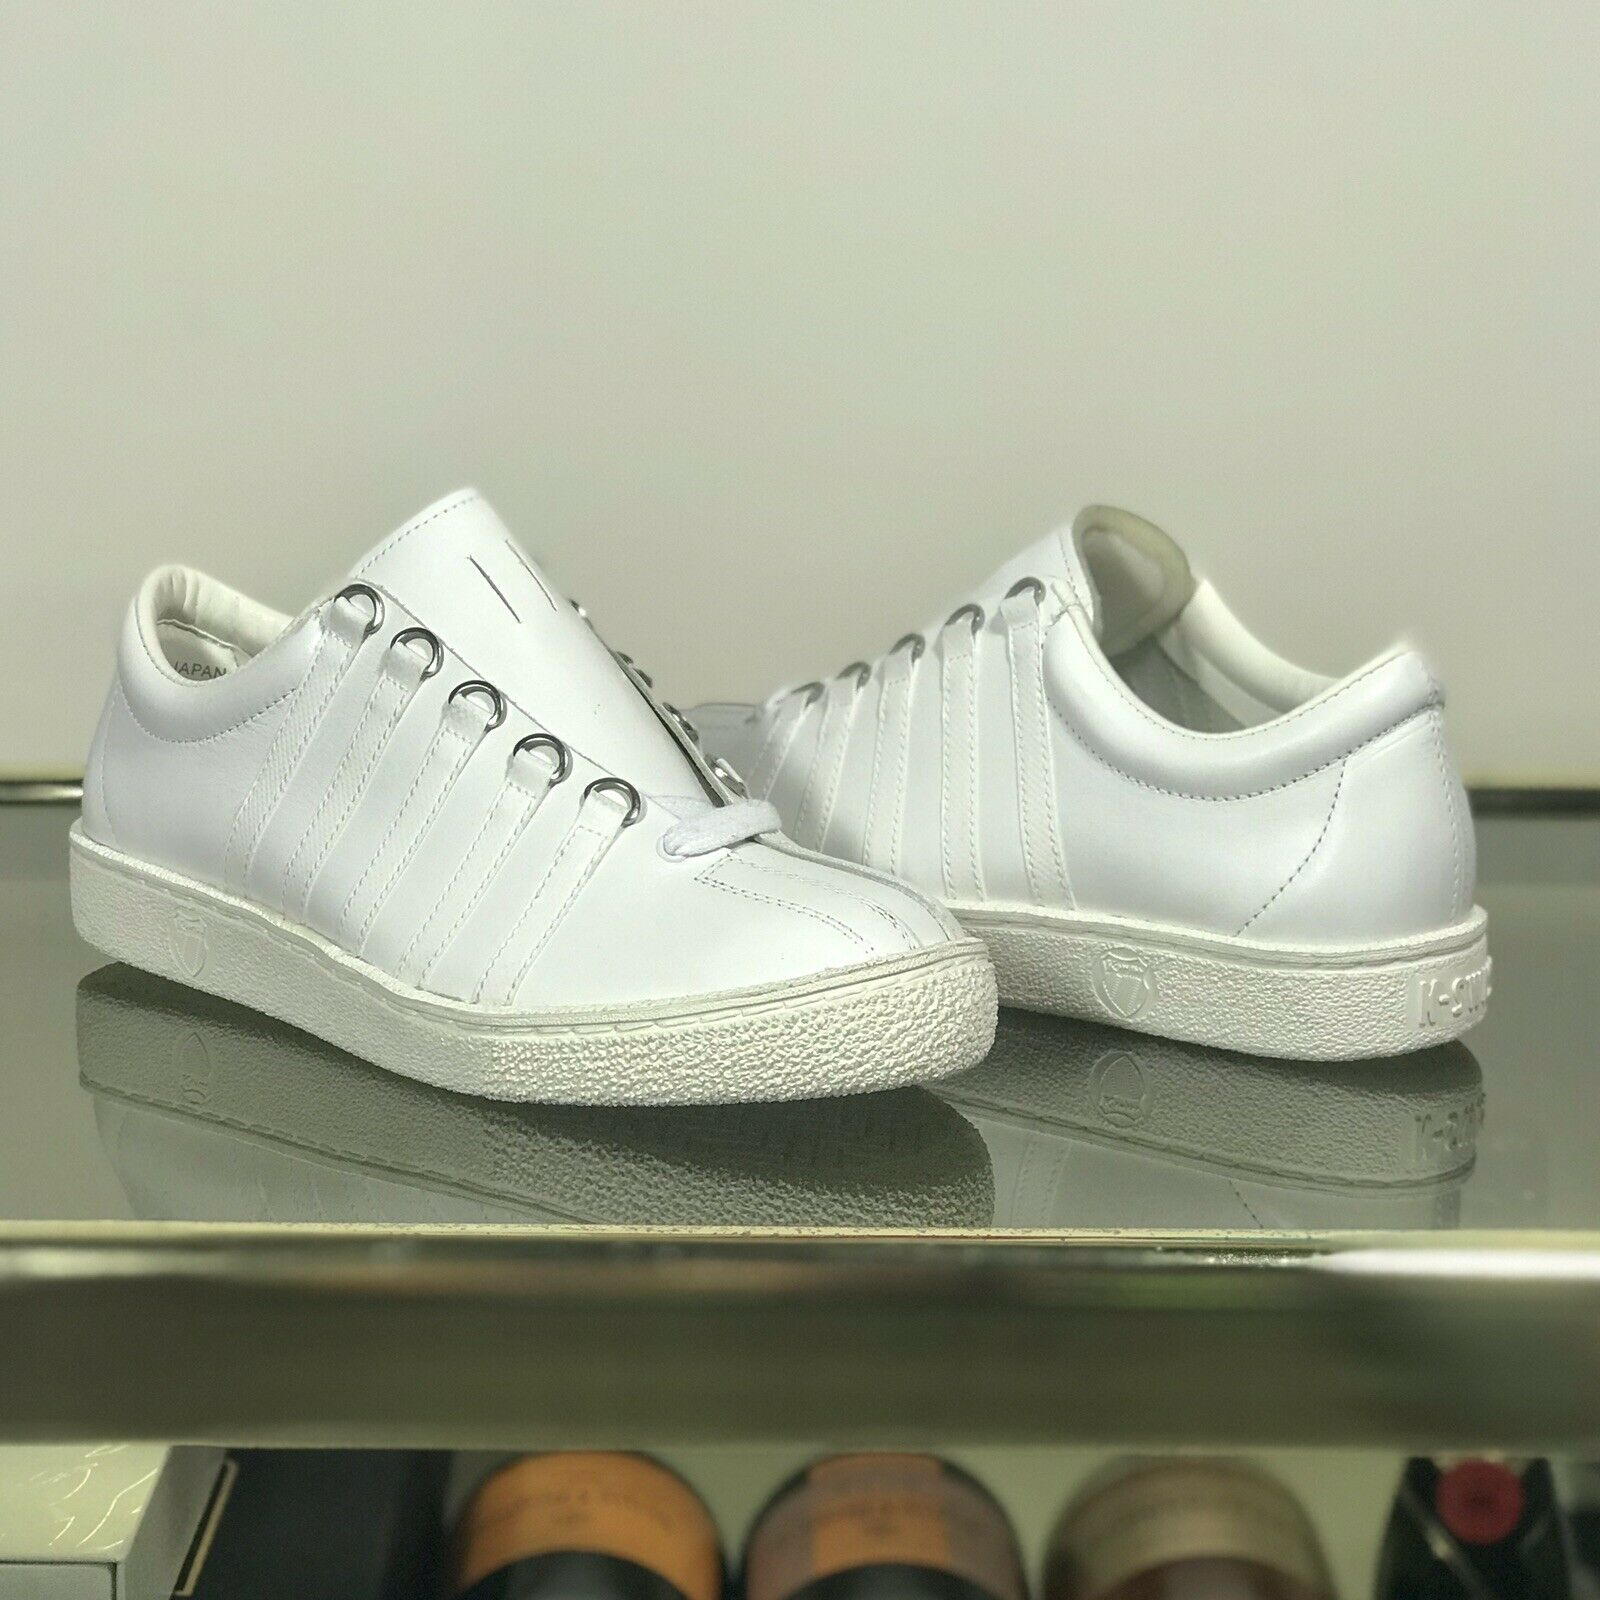 RARE DS NEW SZ 6 US 24 CM K SWISS CLASSIC 66 JPN LOW LEATHER WHITE MADE IN JAPAN